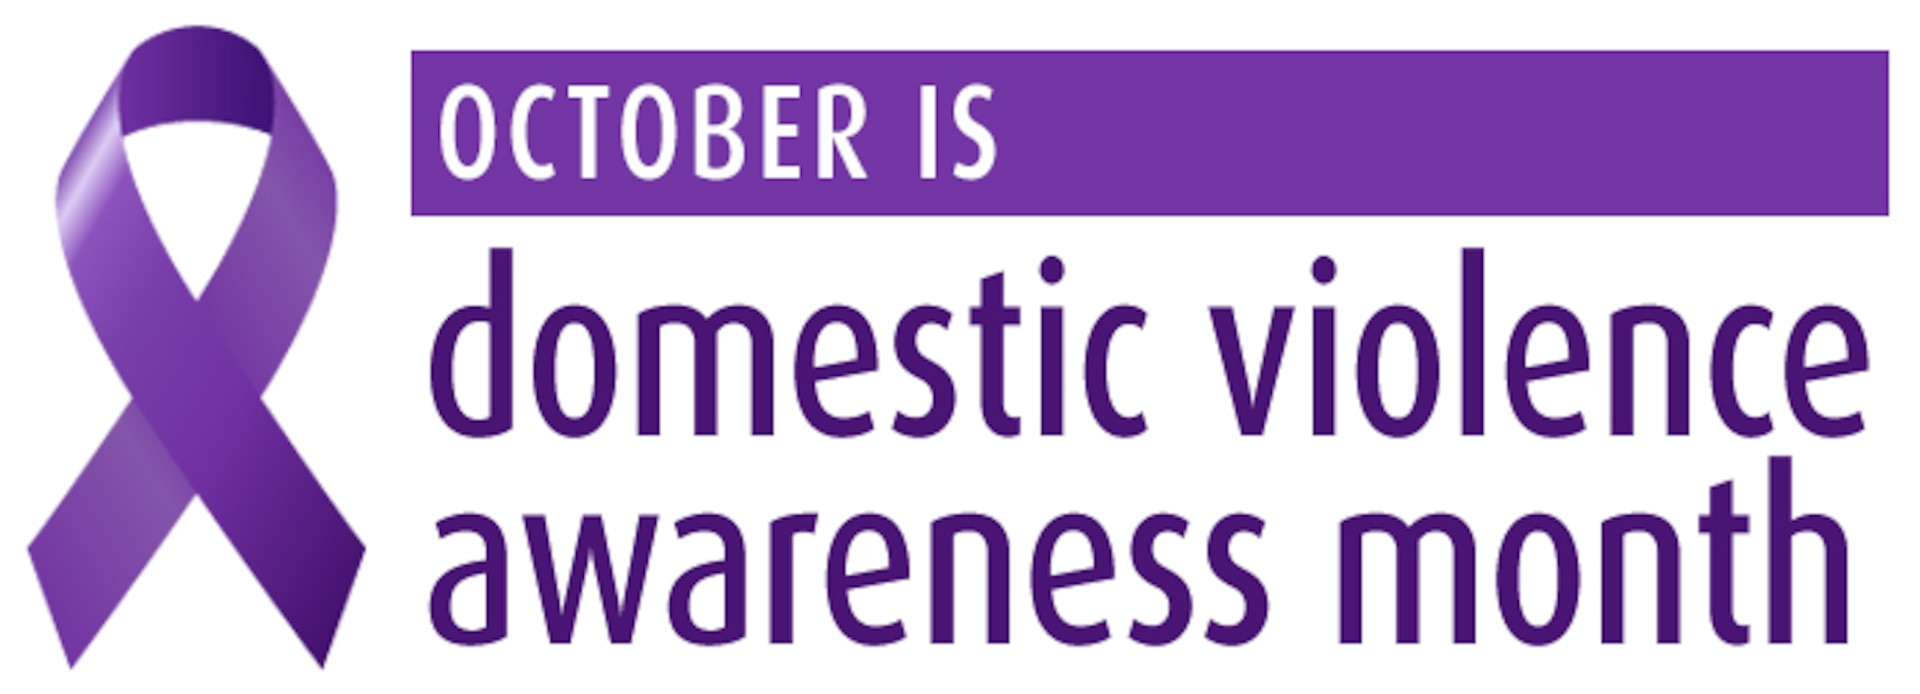 October is National Domestic Violence Awareness Month.